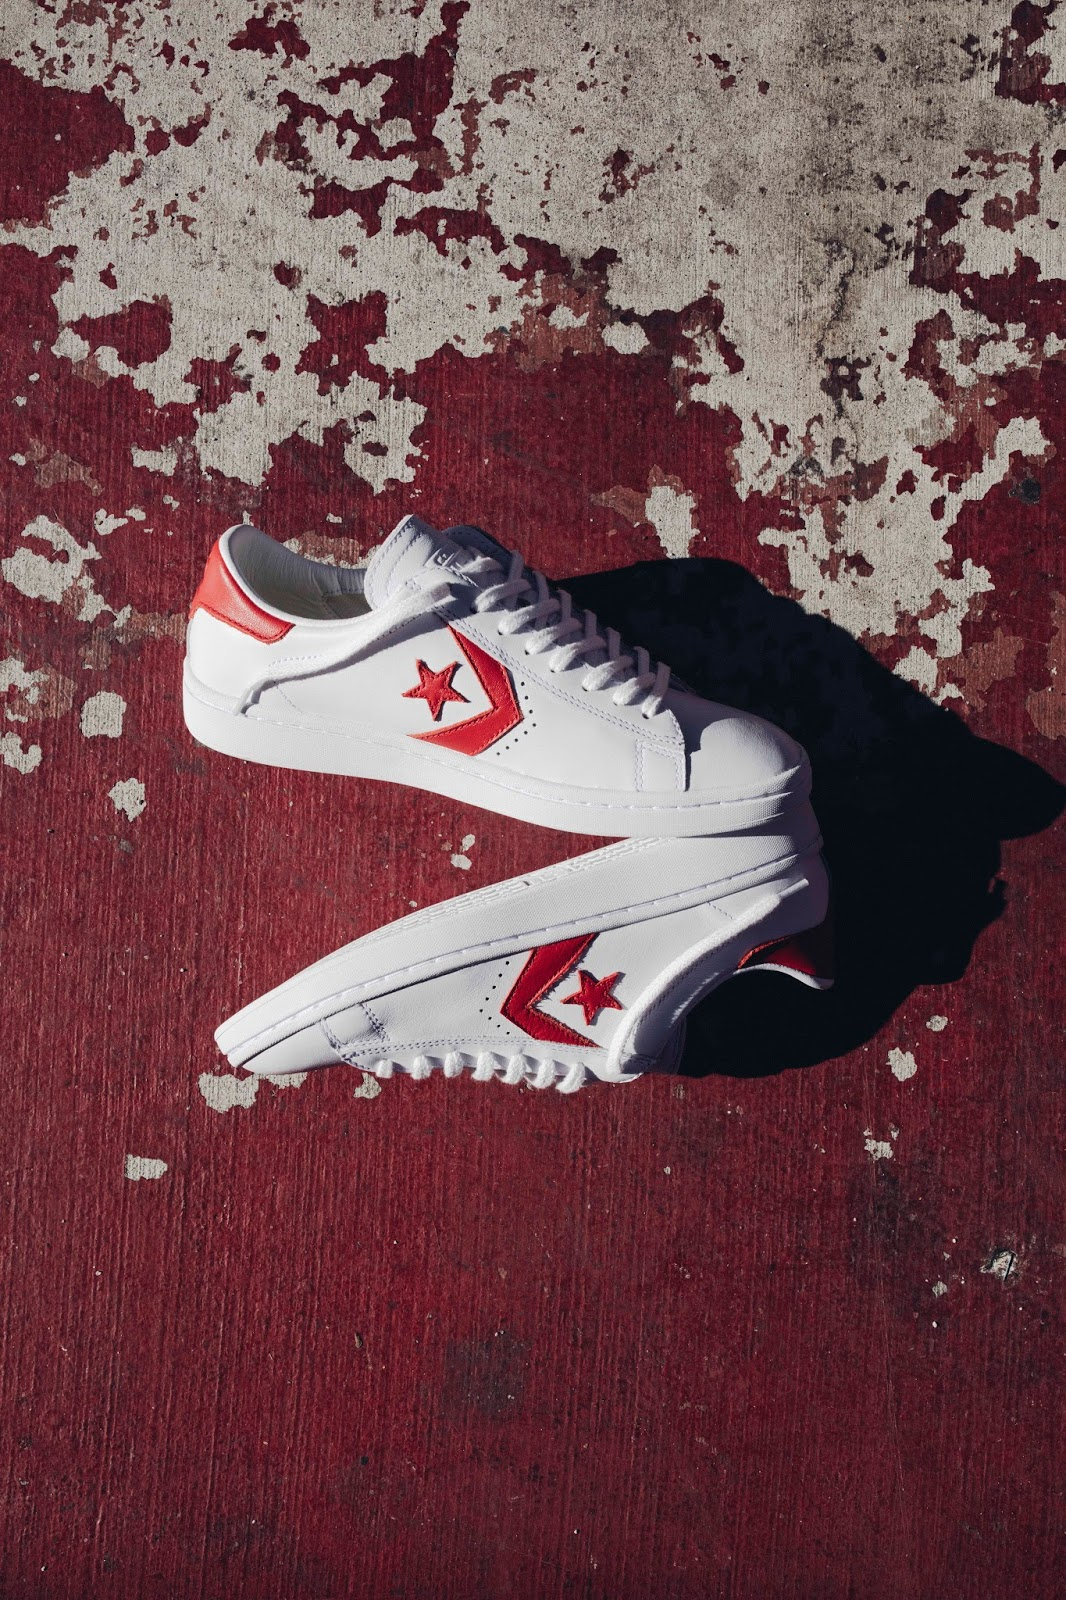 05b7ea7dffbb The Converse Cons Pro Leather LP Leather is a low-top take on a legendary  basketball silhouette